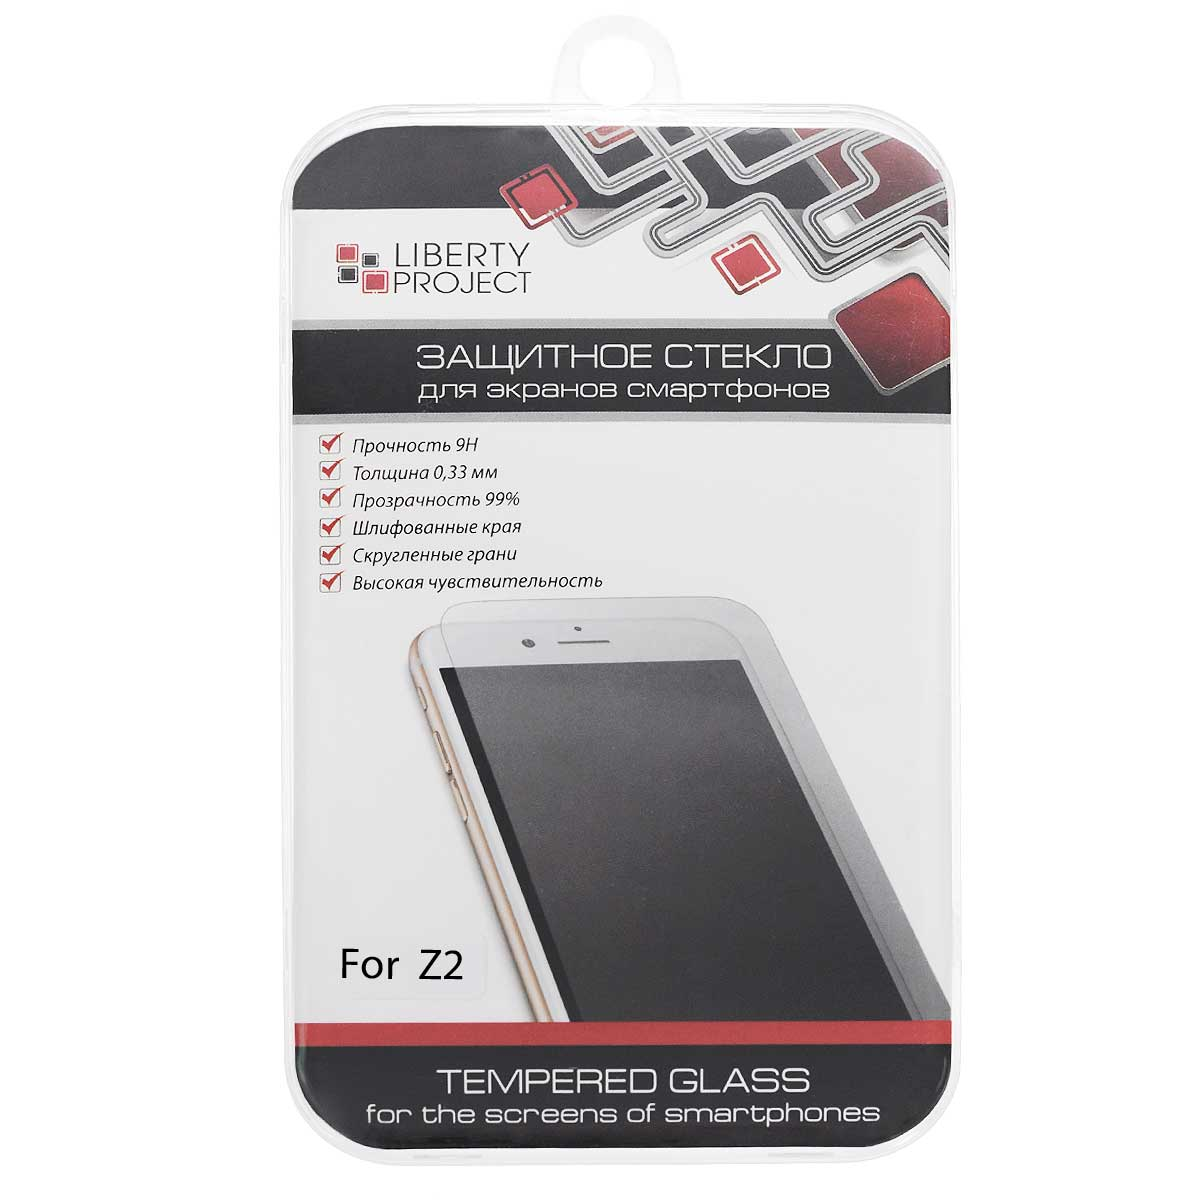 Liberty Project Tempered Glass защитное стекло для Sony Z2, Clear (0,33 мм)